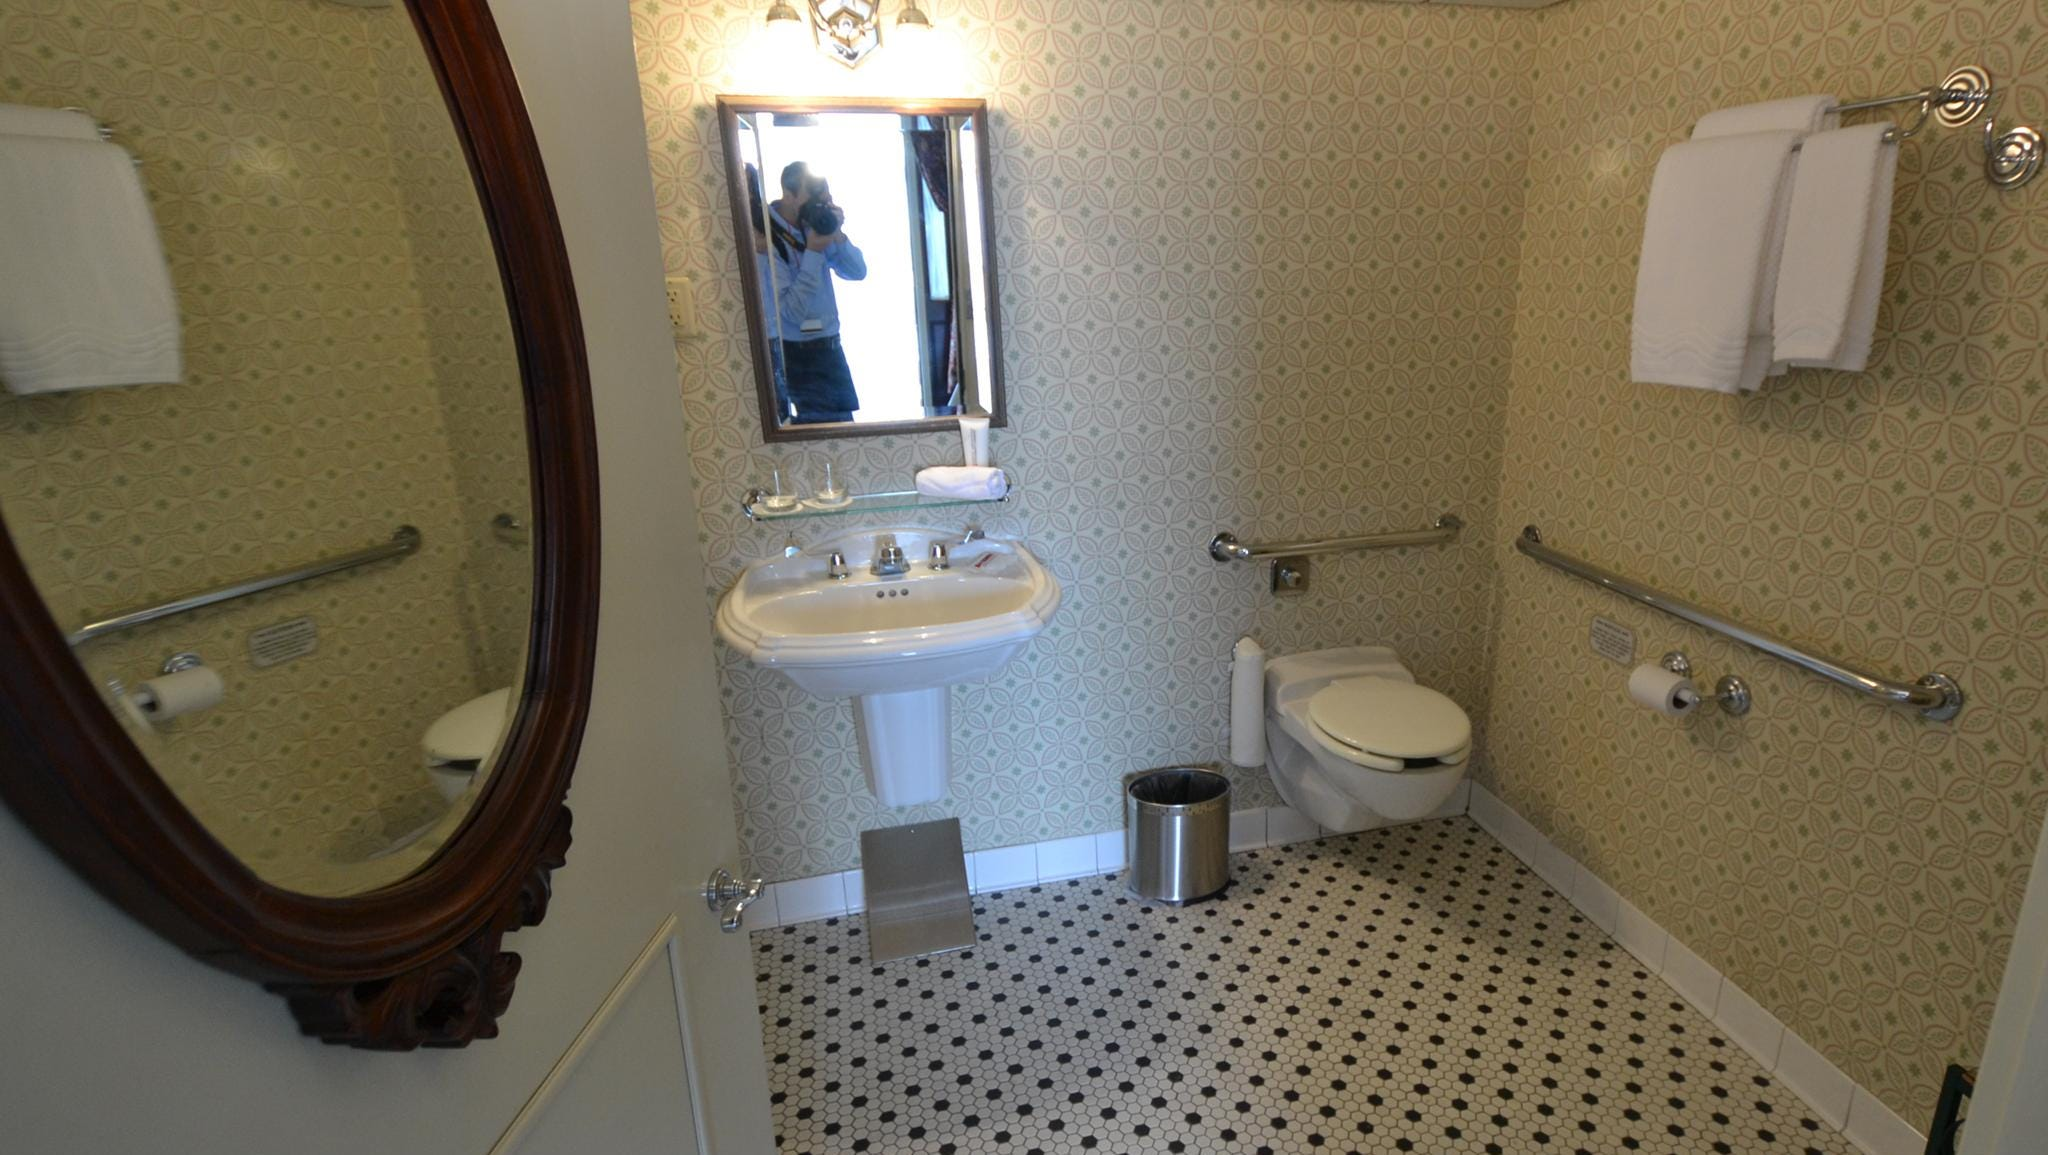 The California room's bathroom is designed for passengers with disabilities.